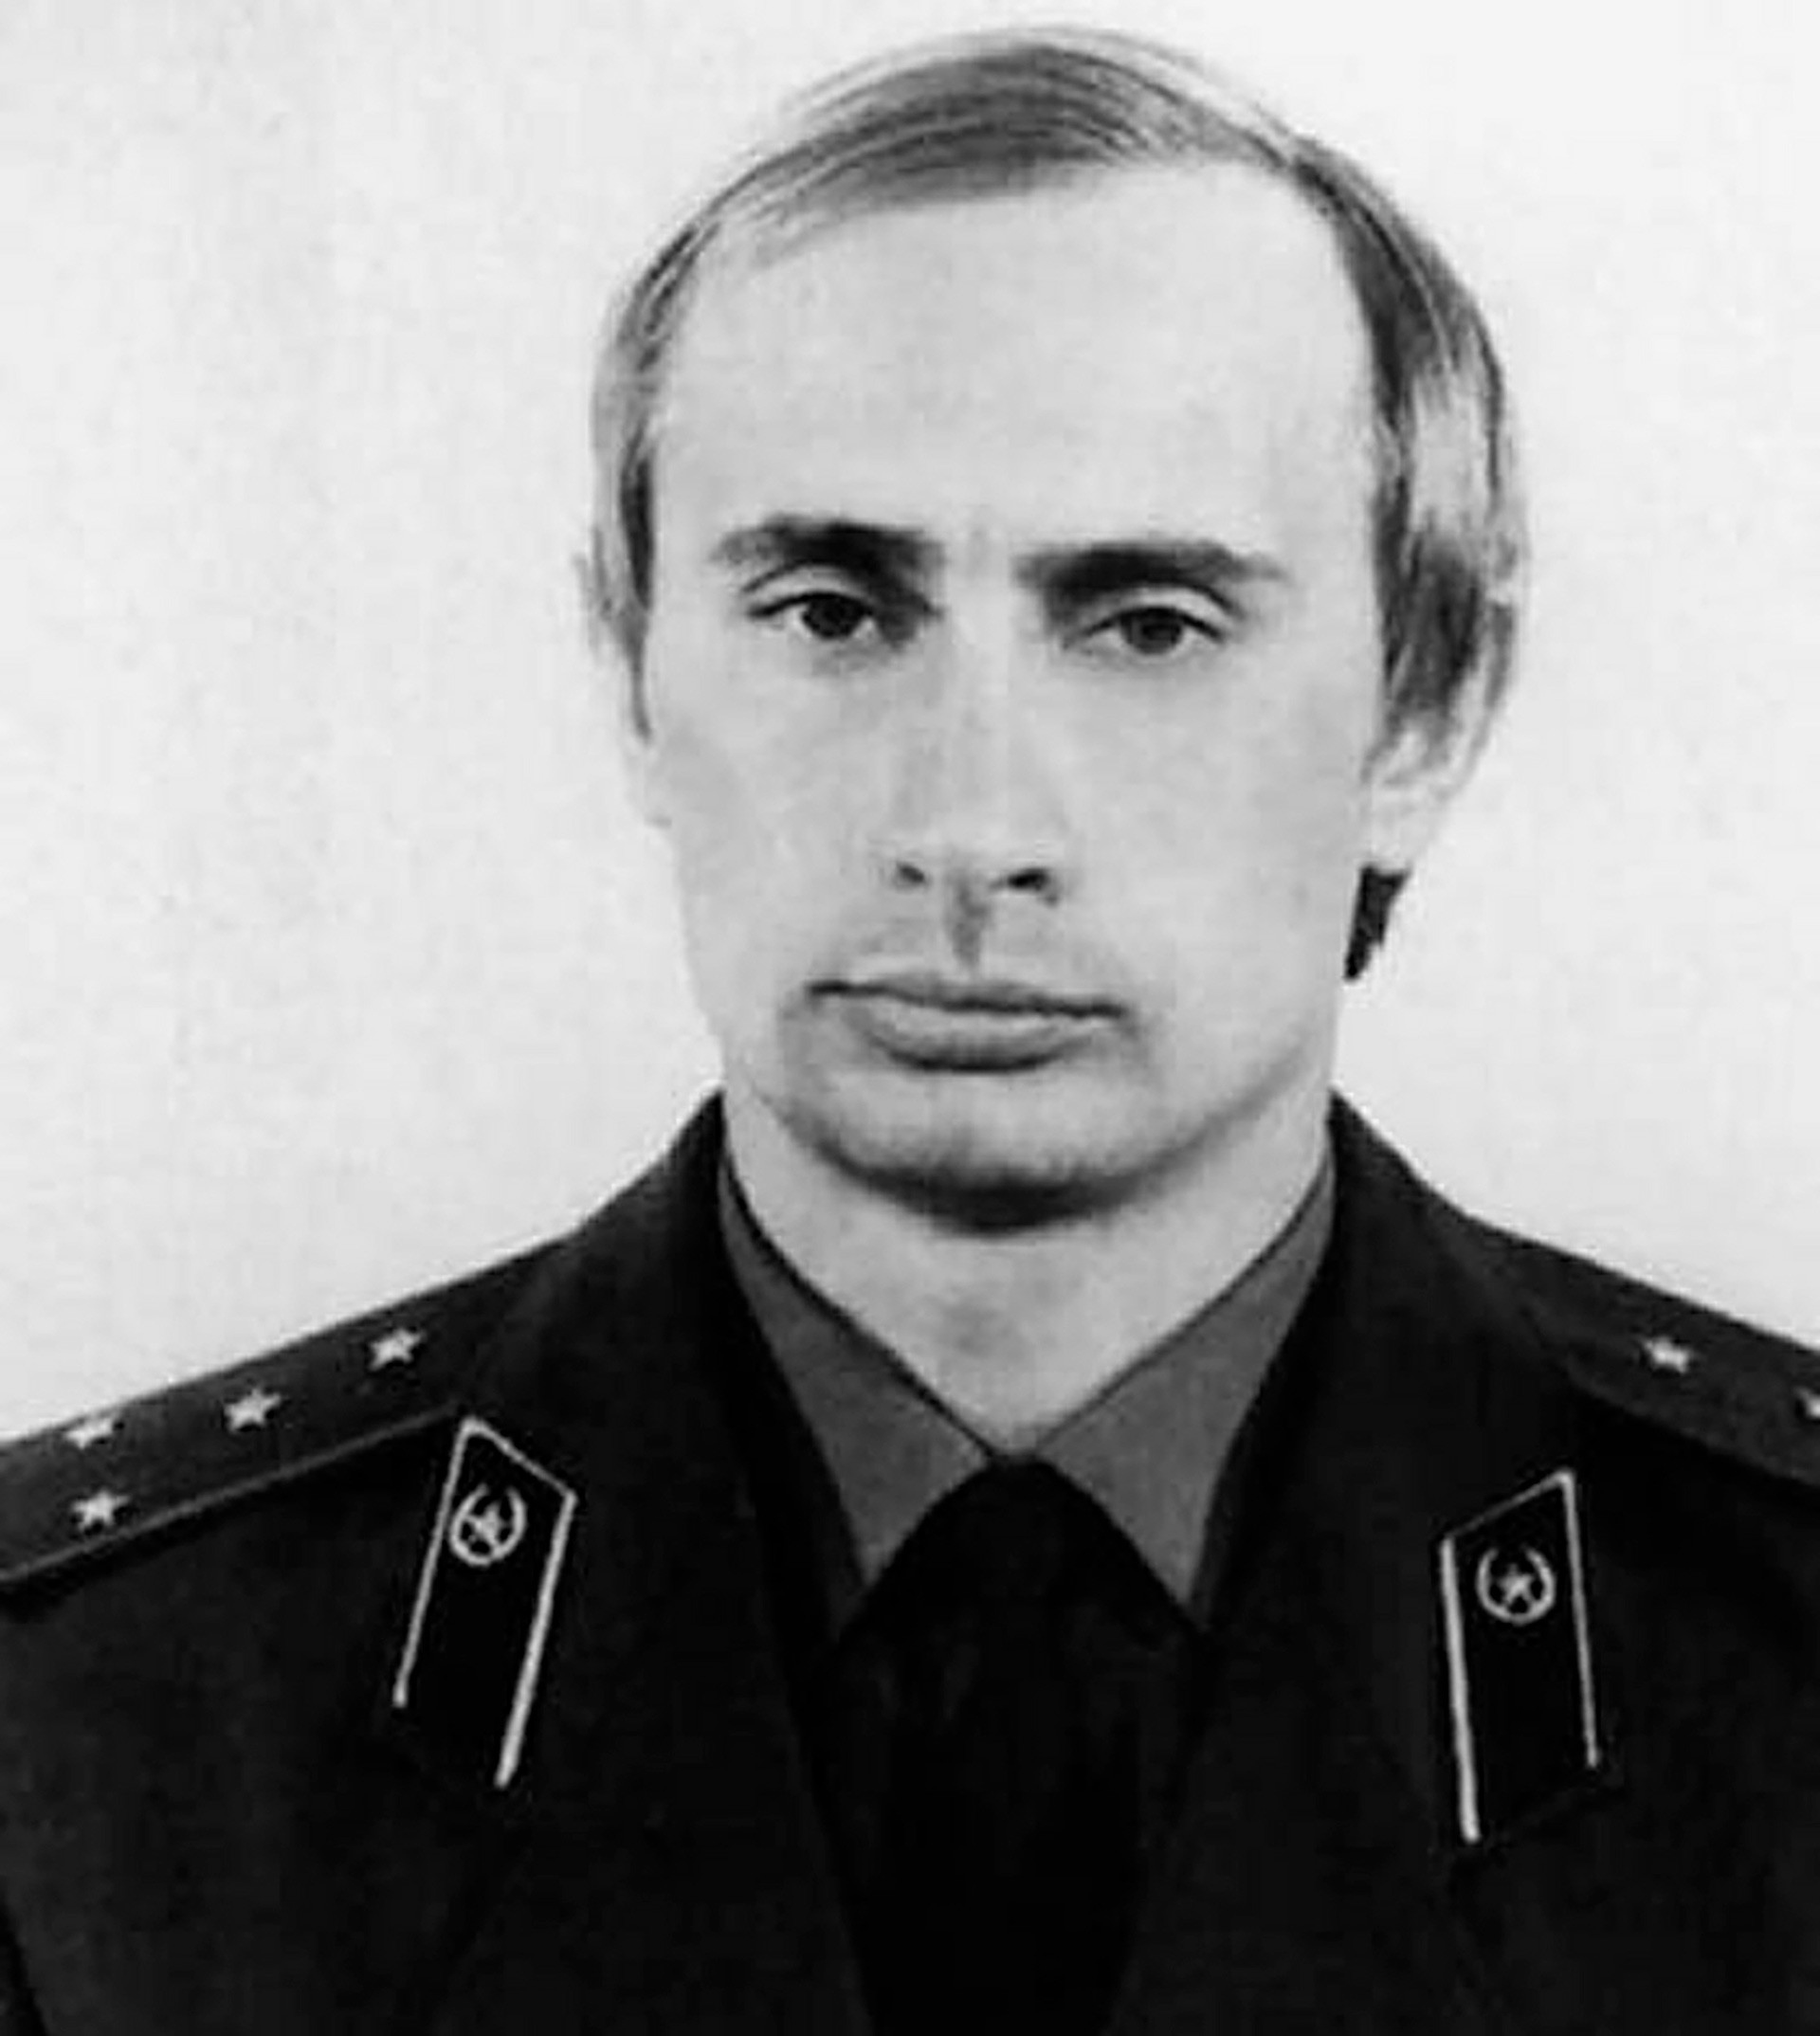 Putin in KGB uniform, circa 1980